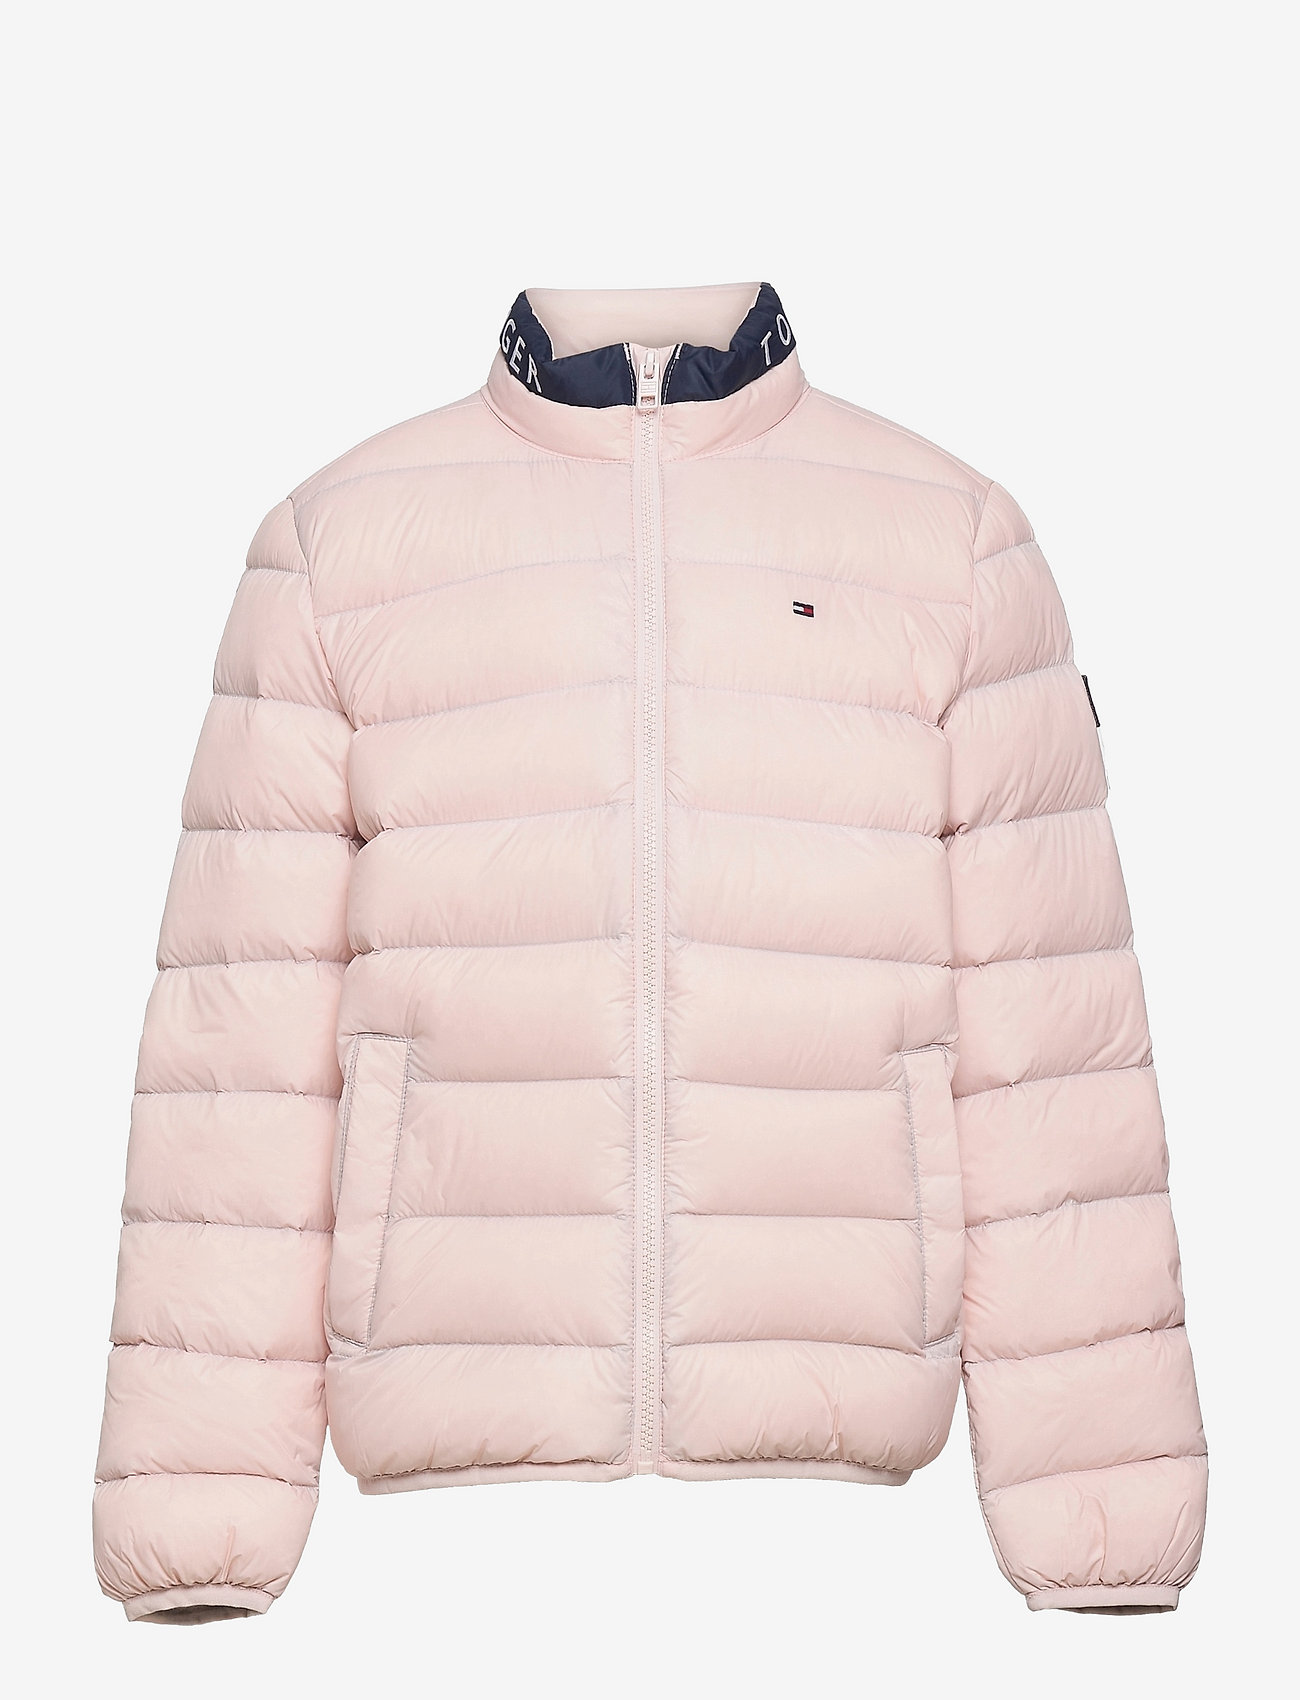 Tommy Hilfiger - UNISEX LIGHT DOWN JACKET - puffer & padded - delicate pink - 0